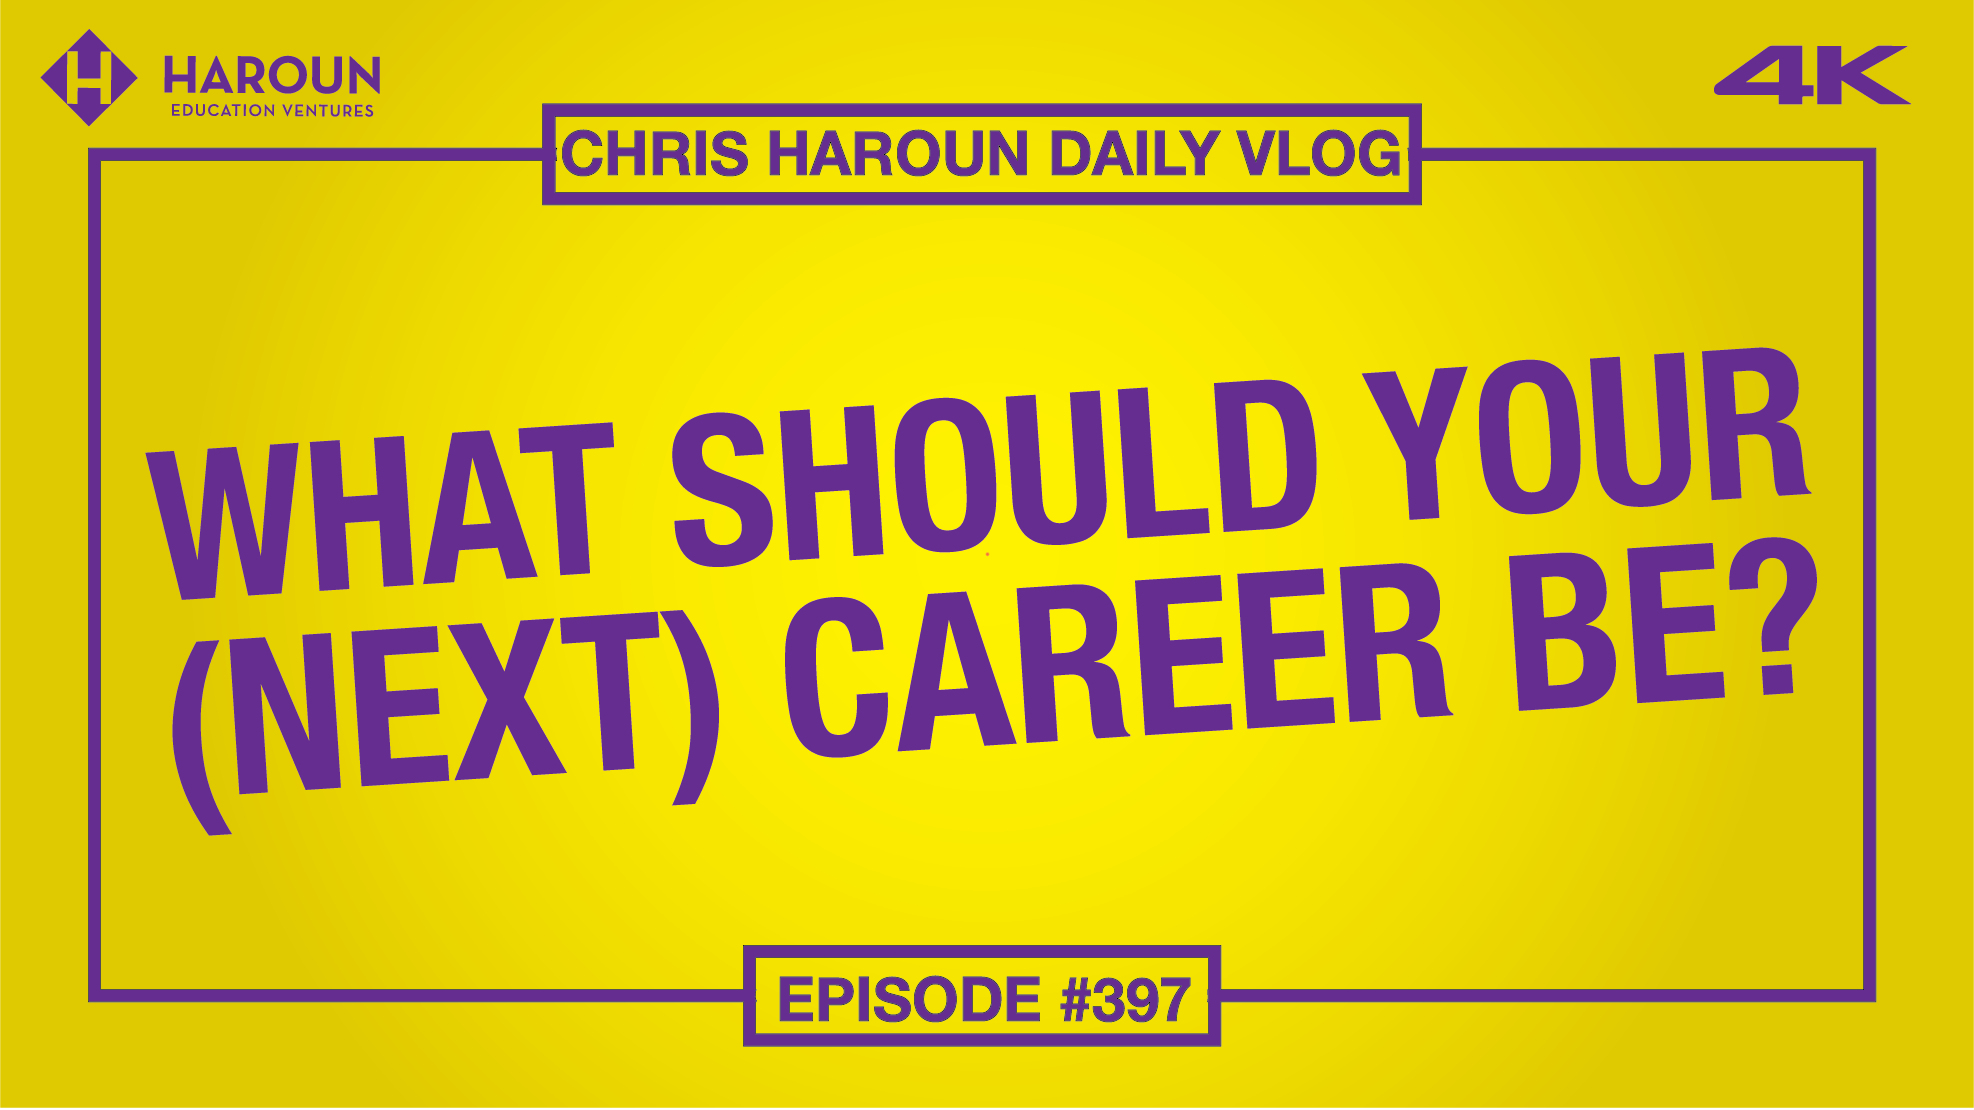 VLOG_397_9_1_2019_What Should Your (NEXT) Career Be?.png